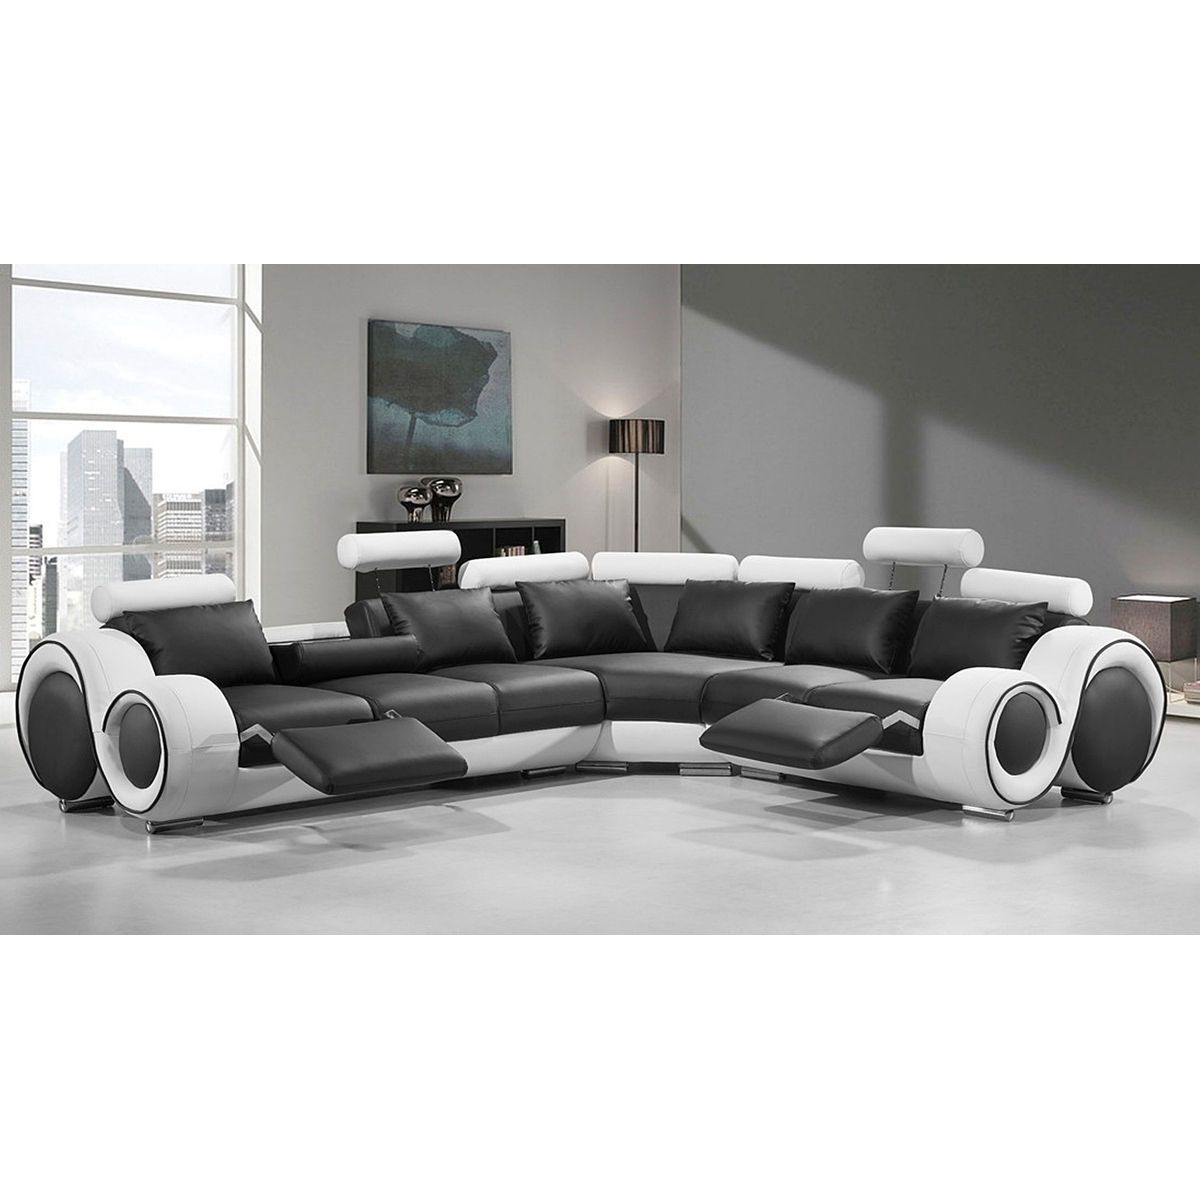 renaissance black white leather l shaped sofa with rounded armrests rh pinterest de